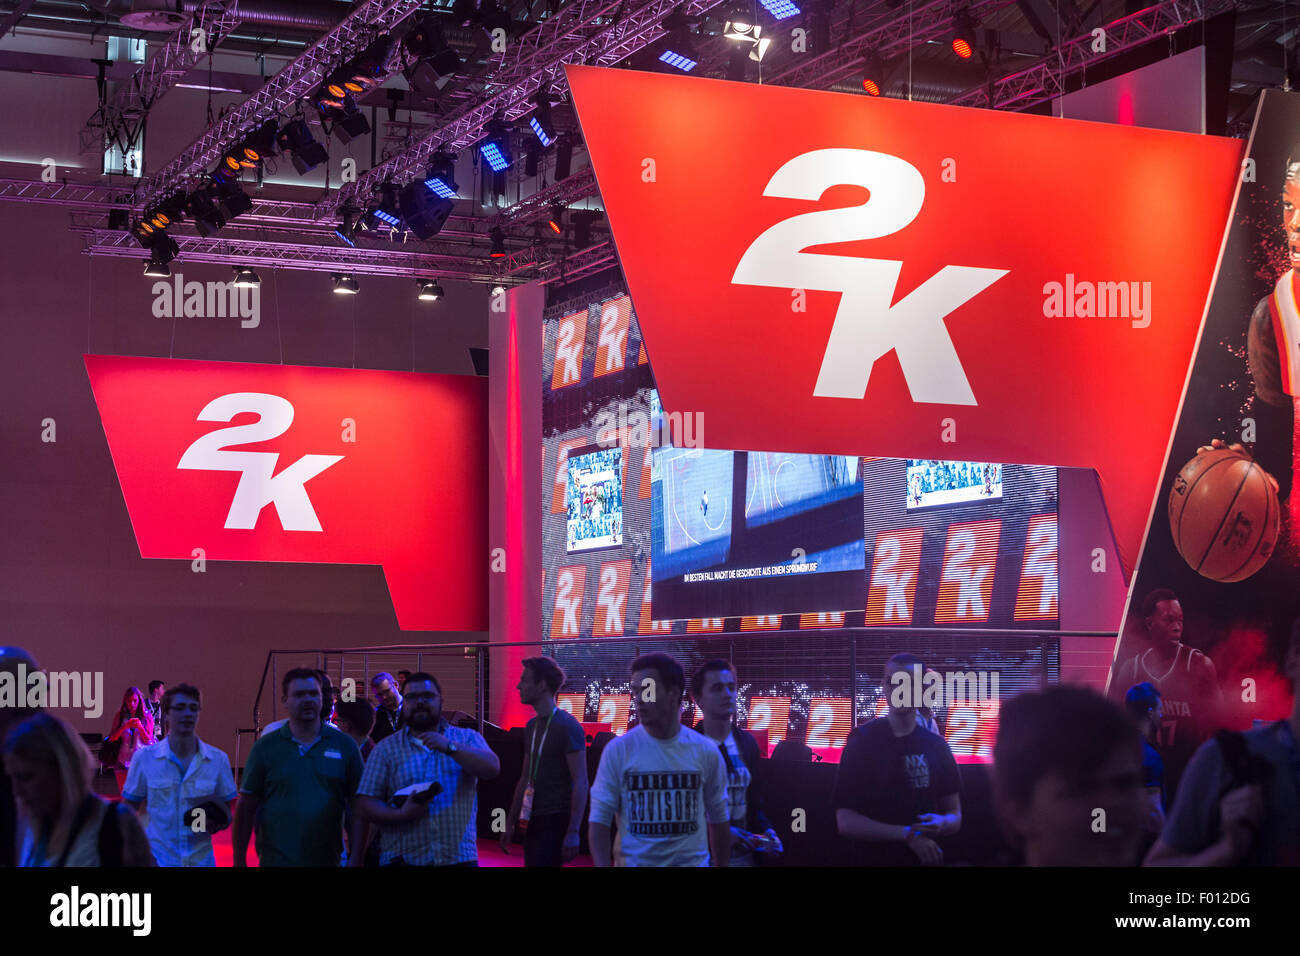 Cologne, Germany  05th Aug, 2015  Visitors at the 2K booth